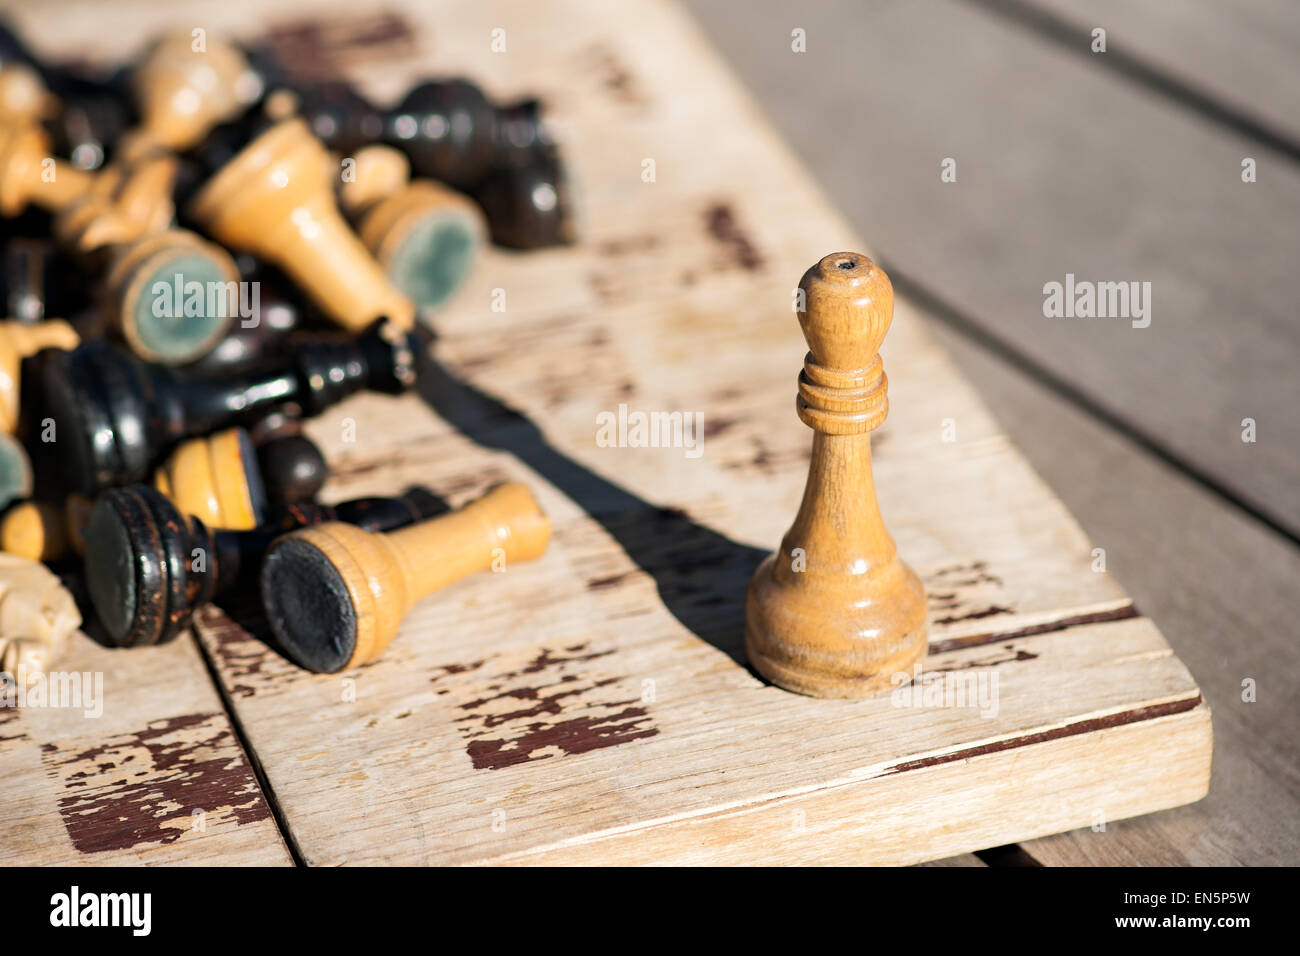 Old and withered wooden chess king on an old and withered chess board. Other chess pieces of black and white color - Stock Image